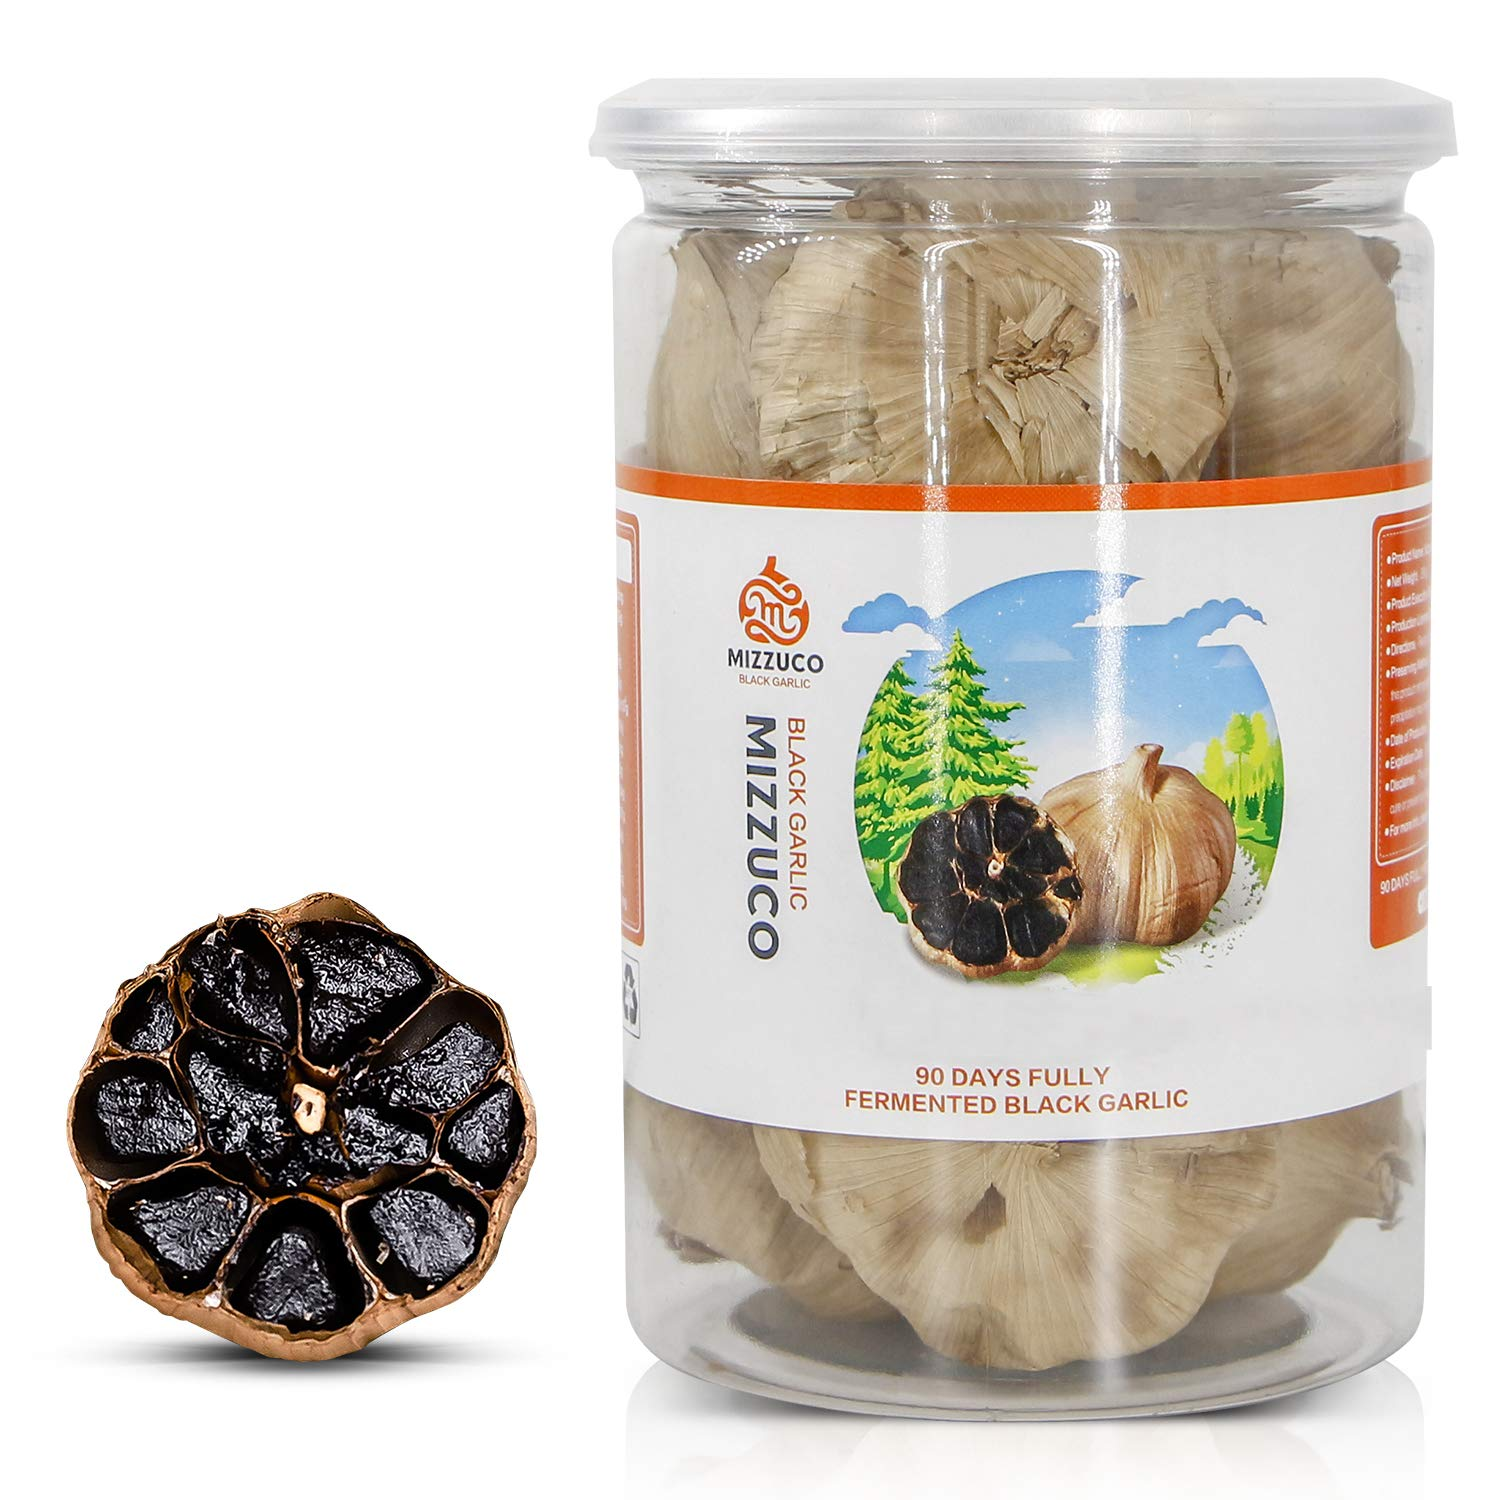 Black Garlic, WHOLE Black Garlic Natural Fermented for 90 days Healthy Snack Ready to Eat or Sauce (290G)